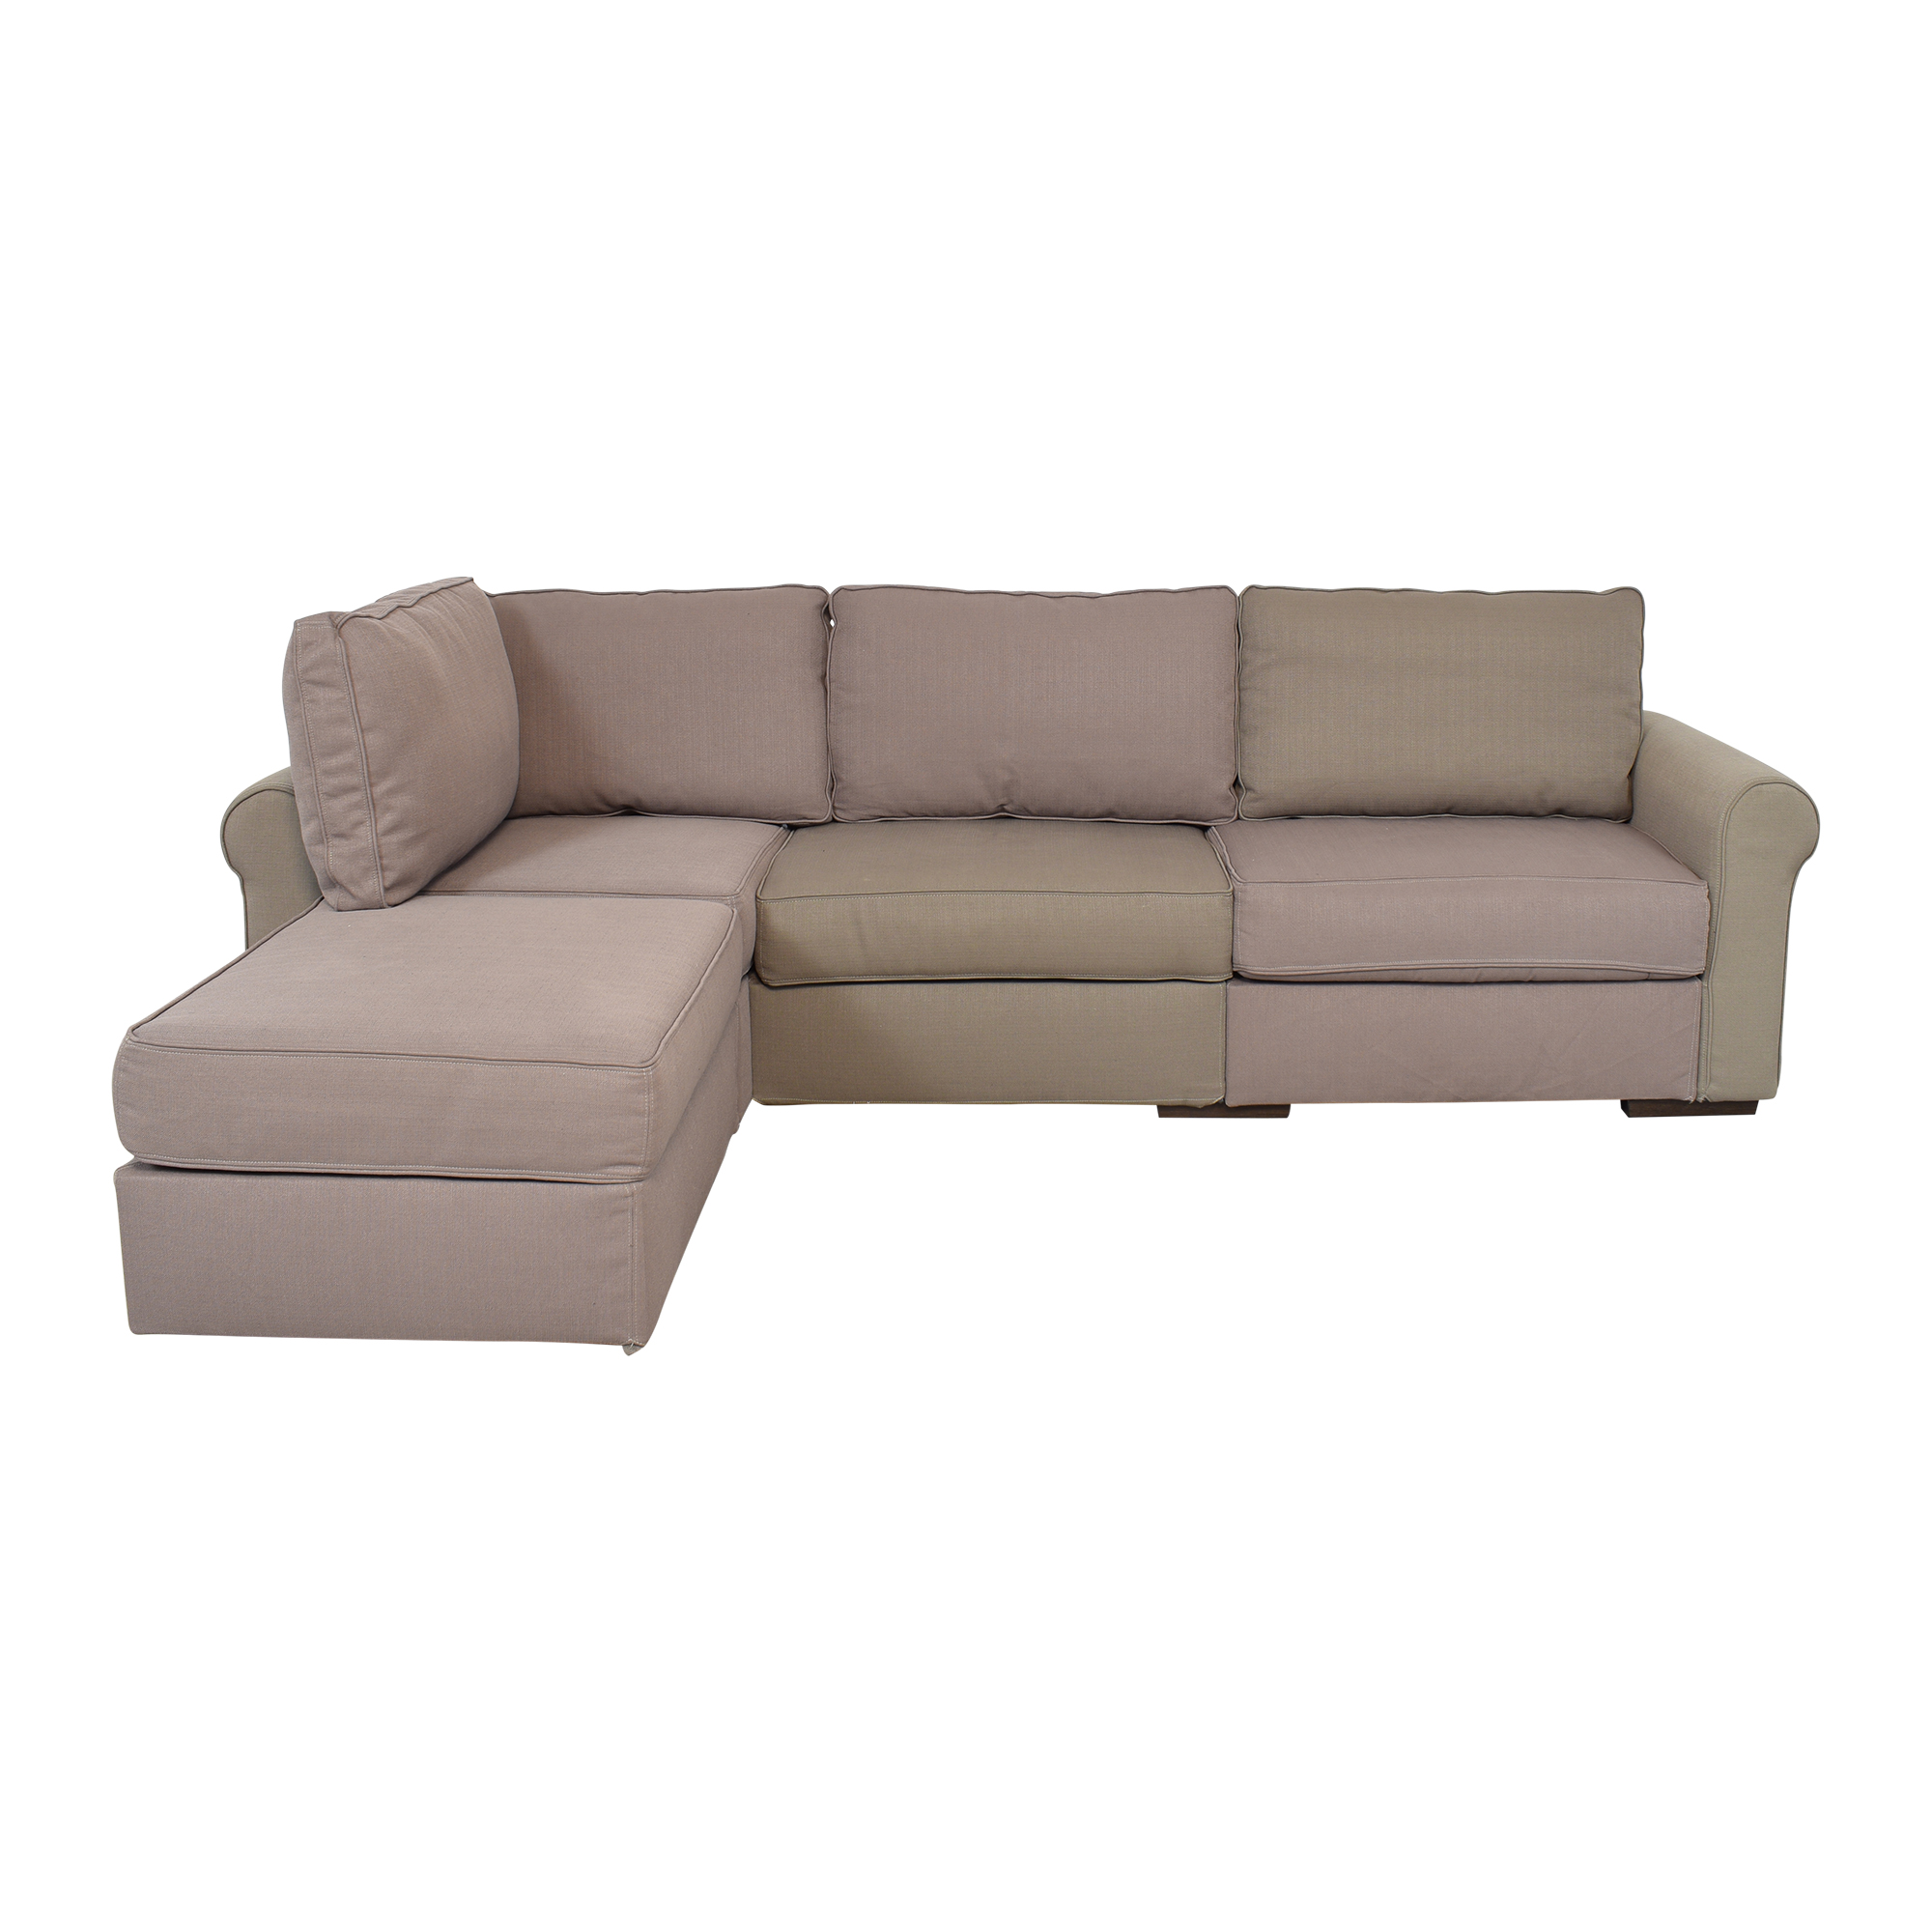 Lovesac Lovesac Chaise Sectional Sofa ct